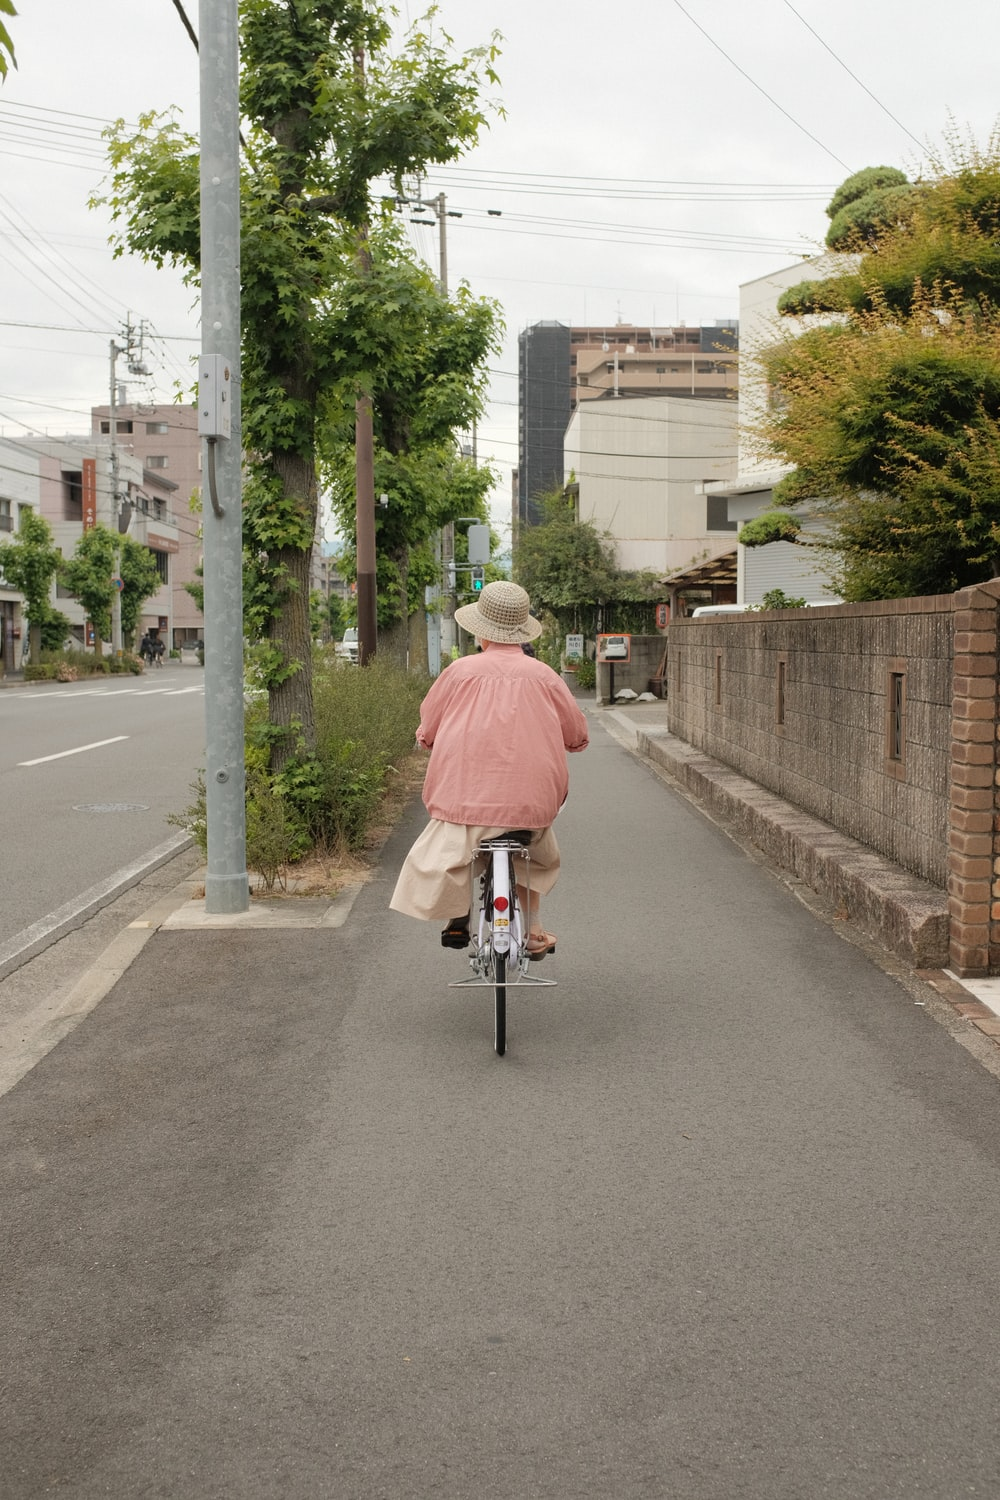 man in red dress shirt riding bicycle on road during daytime